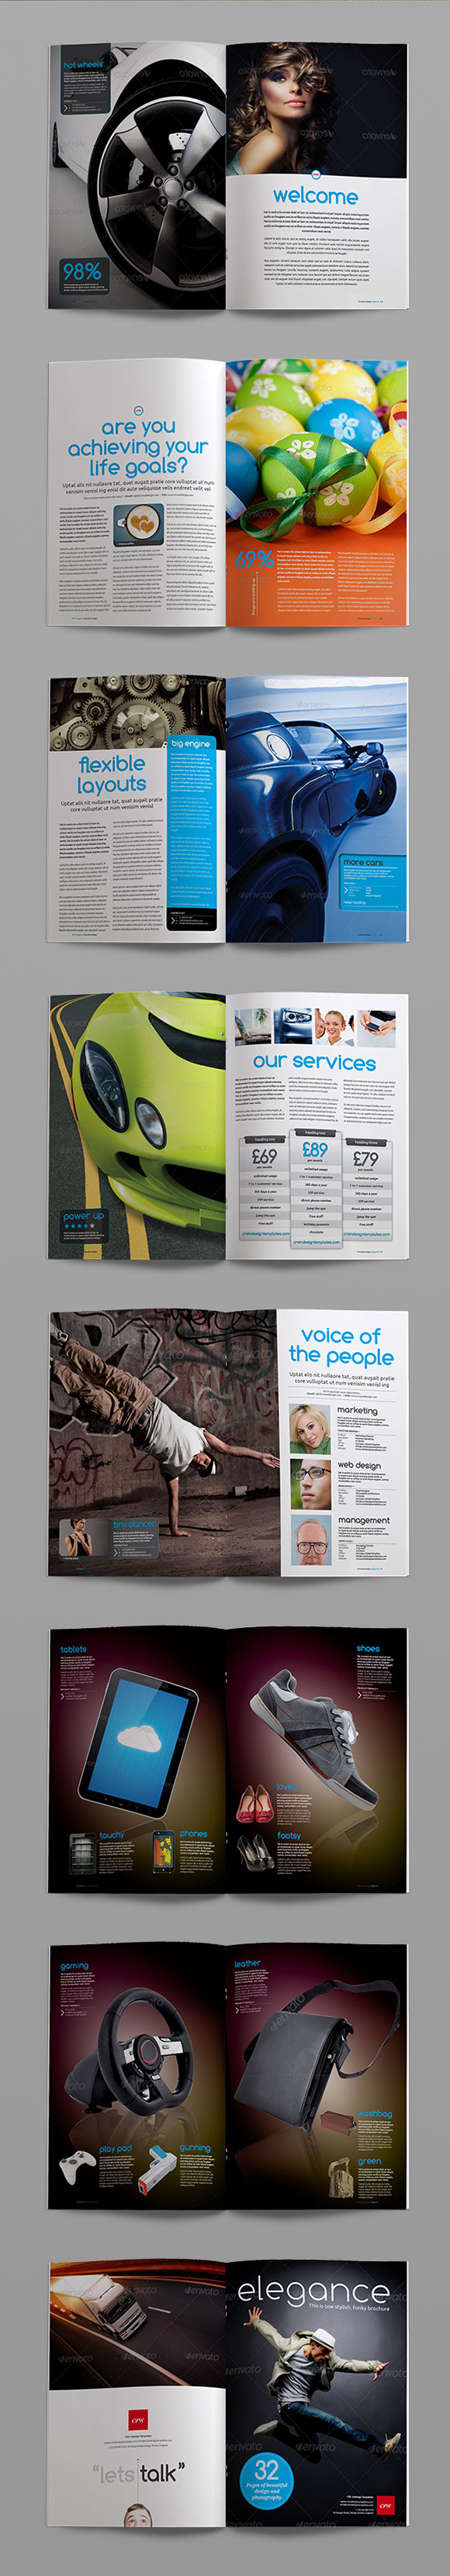 InDesign elegance brochure template page preview